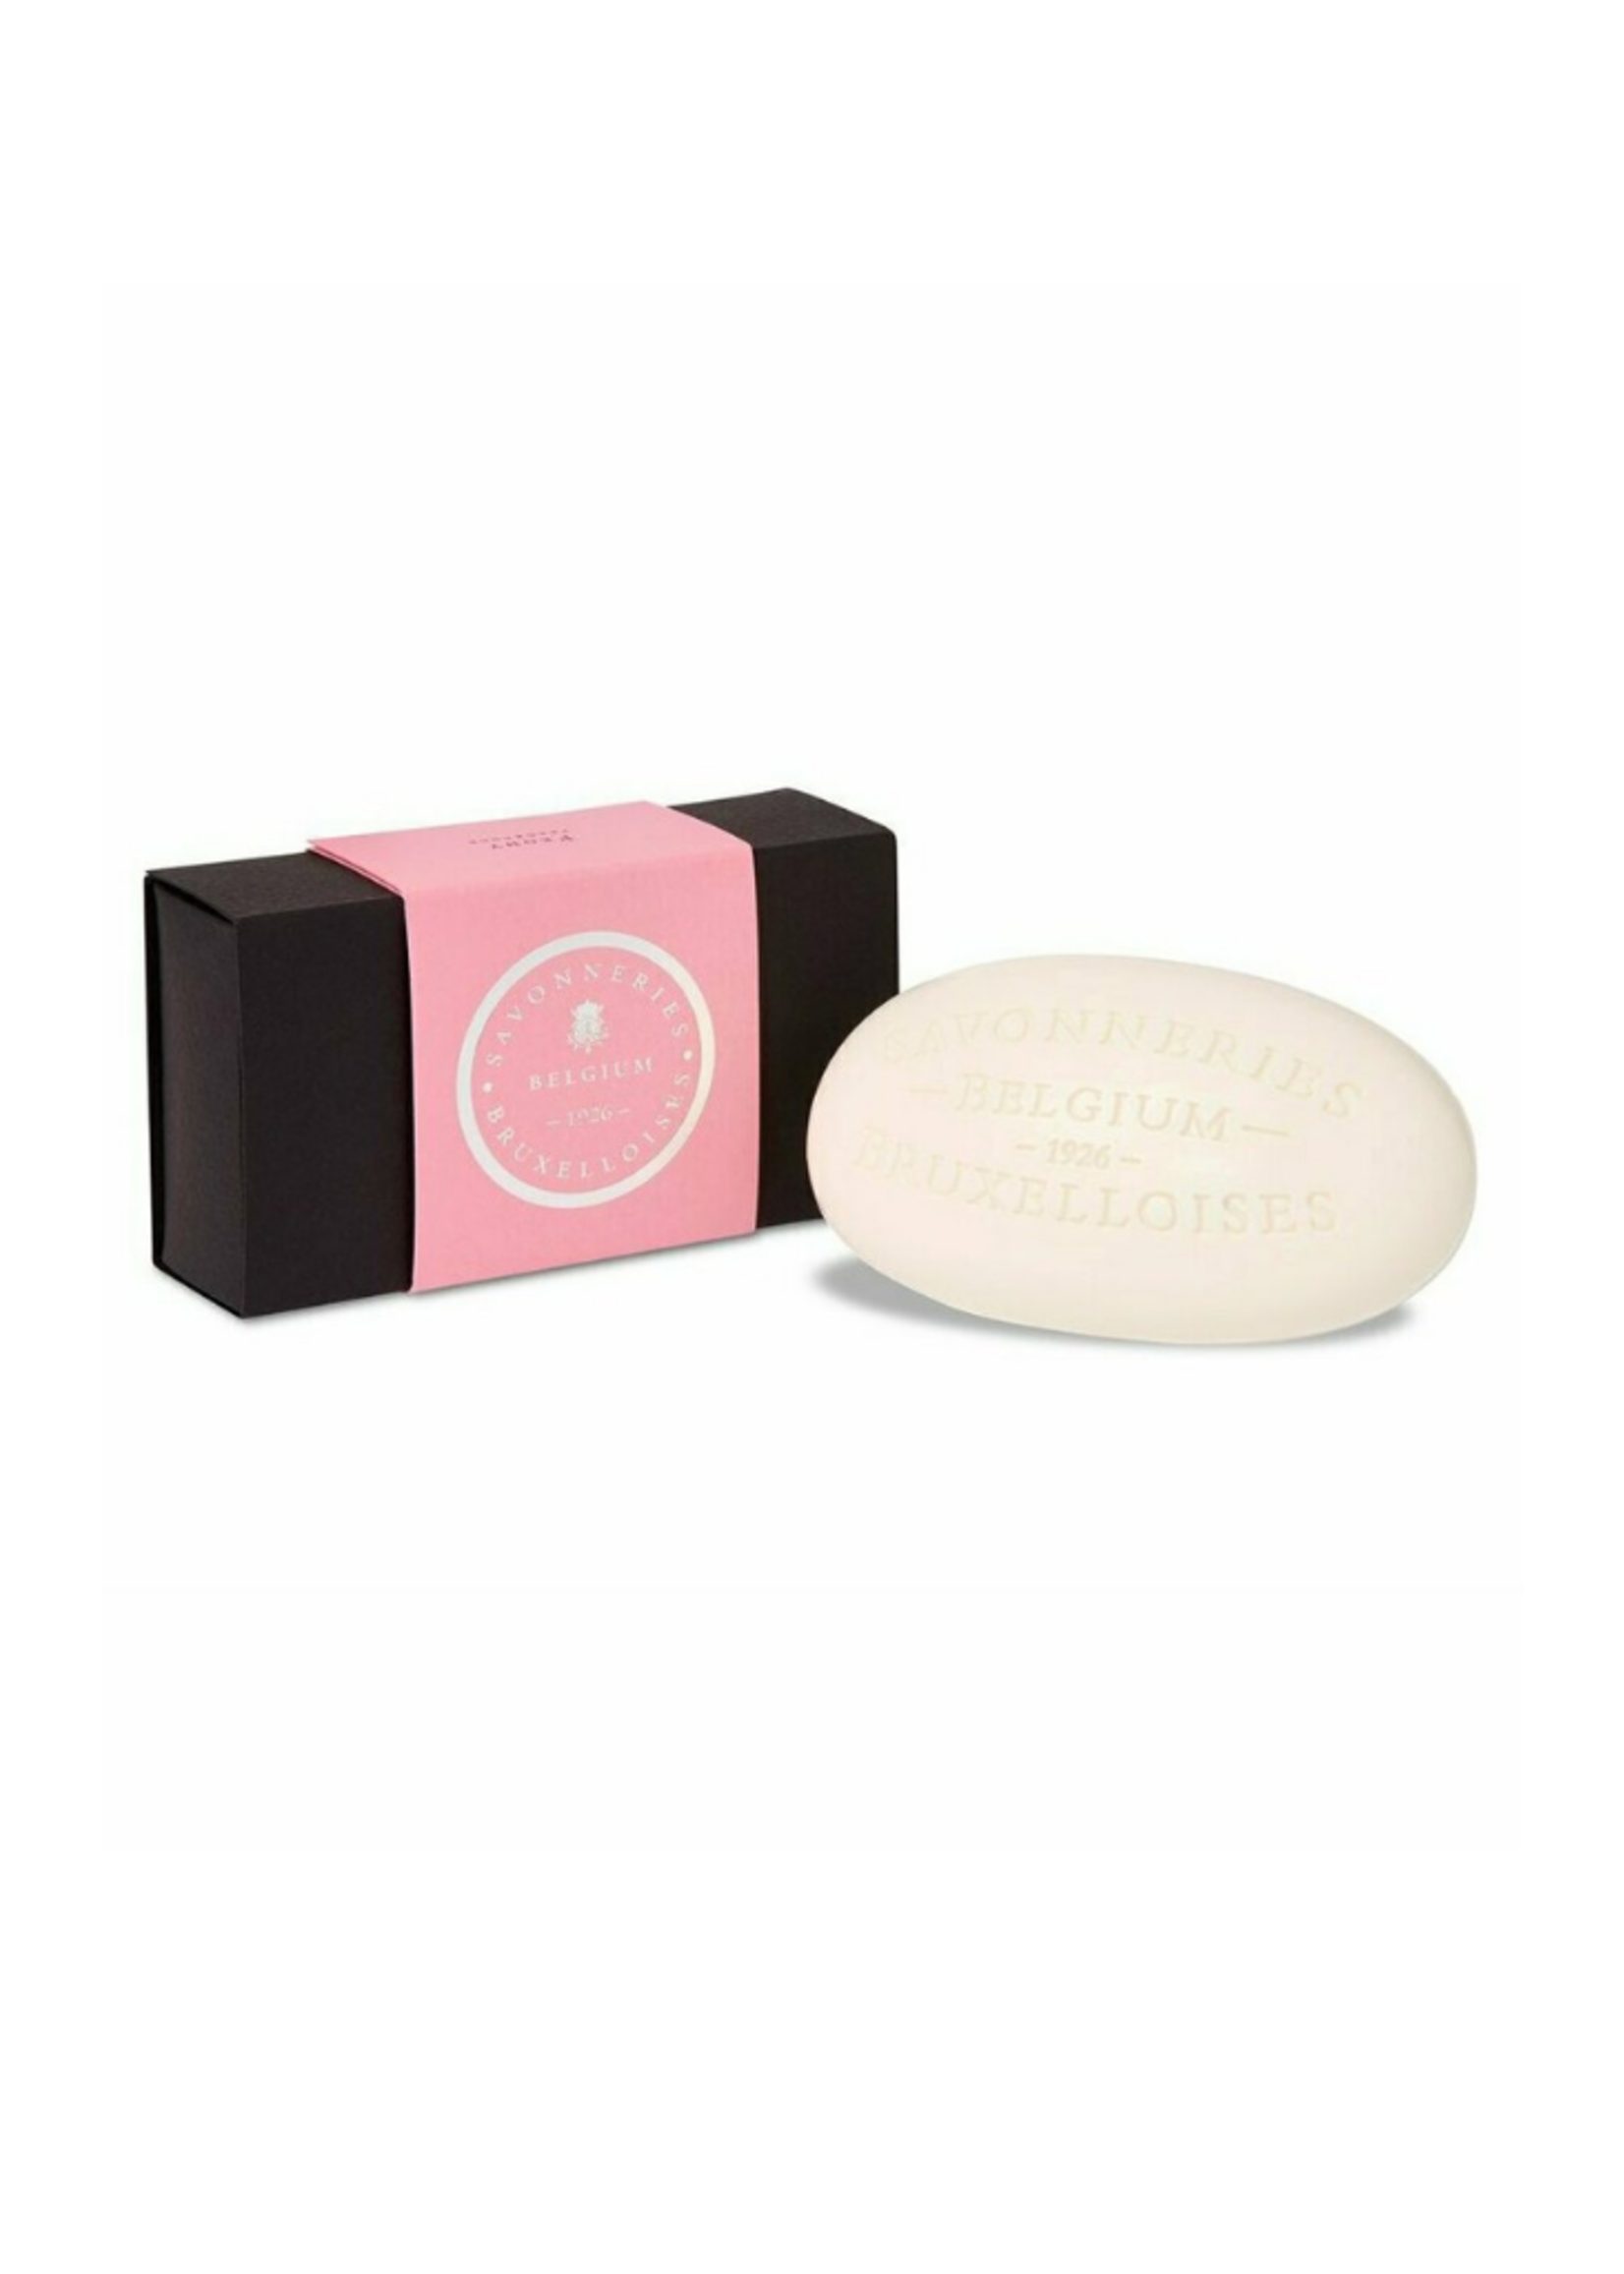 Sweet Bella Savonneries BruxelloisesPeony Soap